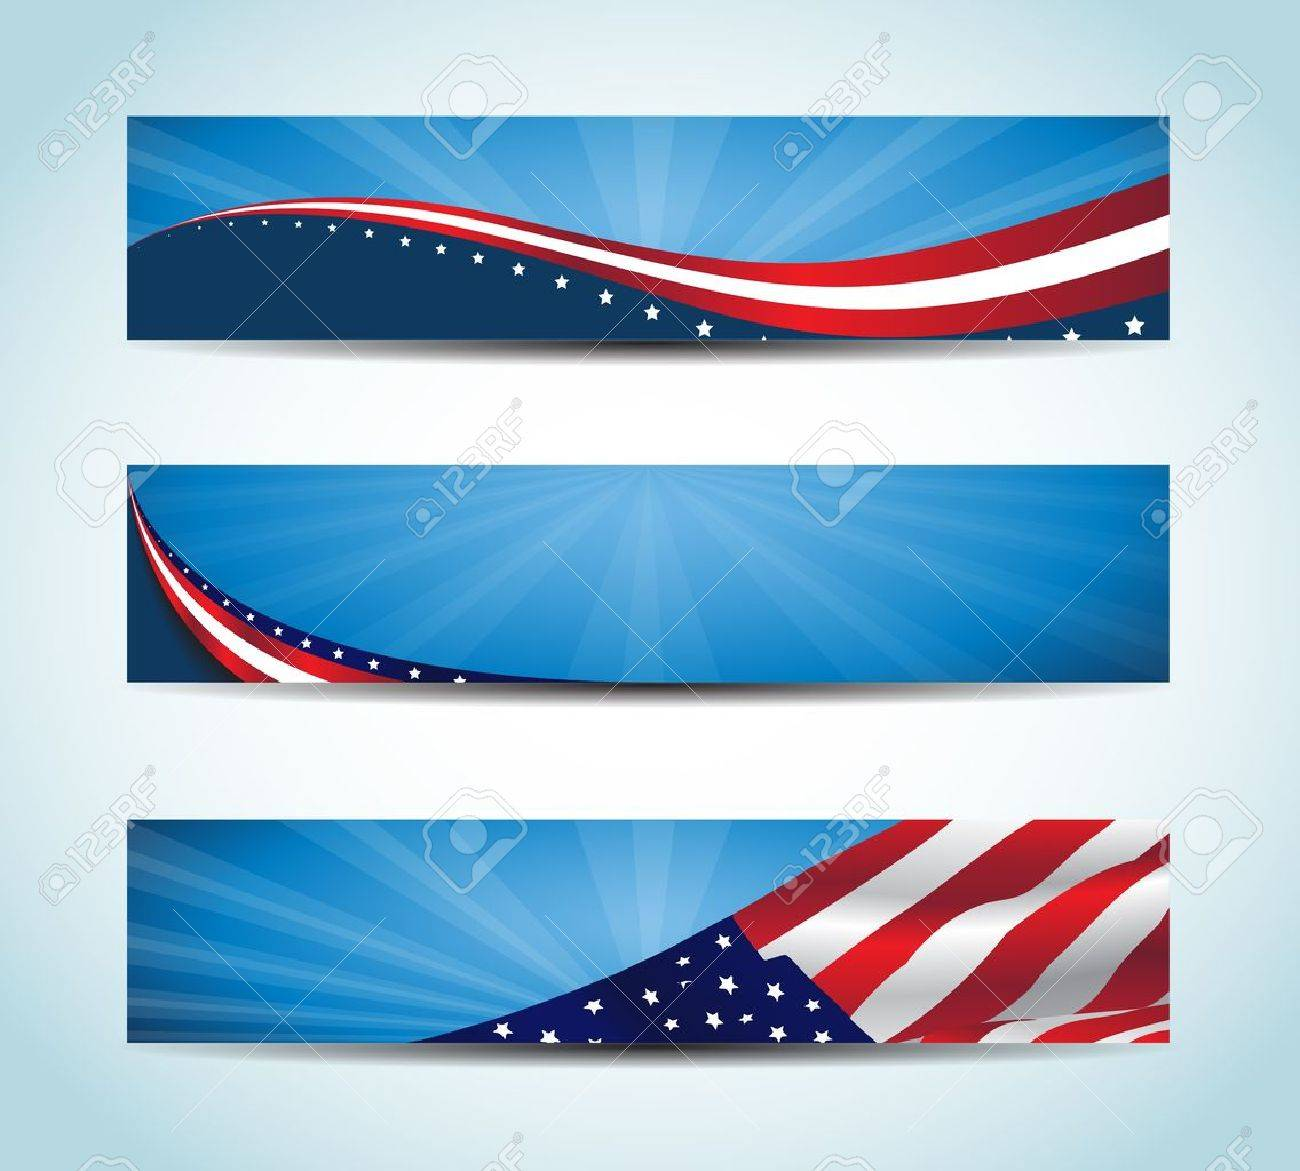 Collection of united states flag conceptual banners    American Banner Stock Vector - 17188461